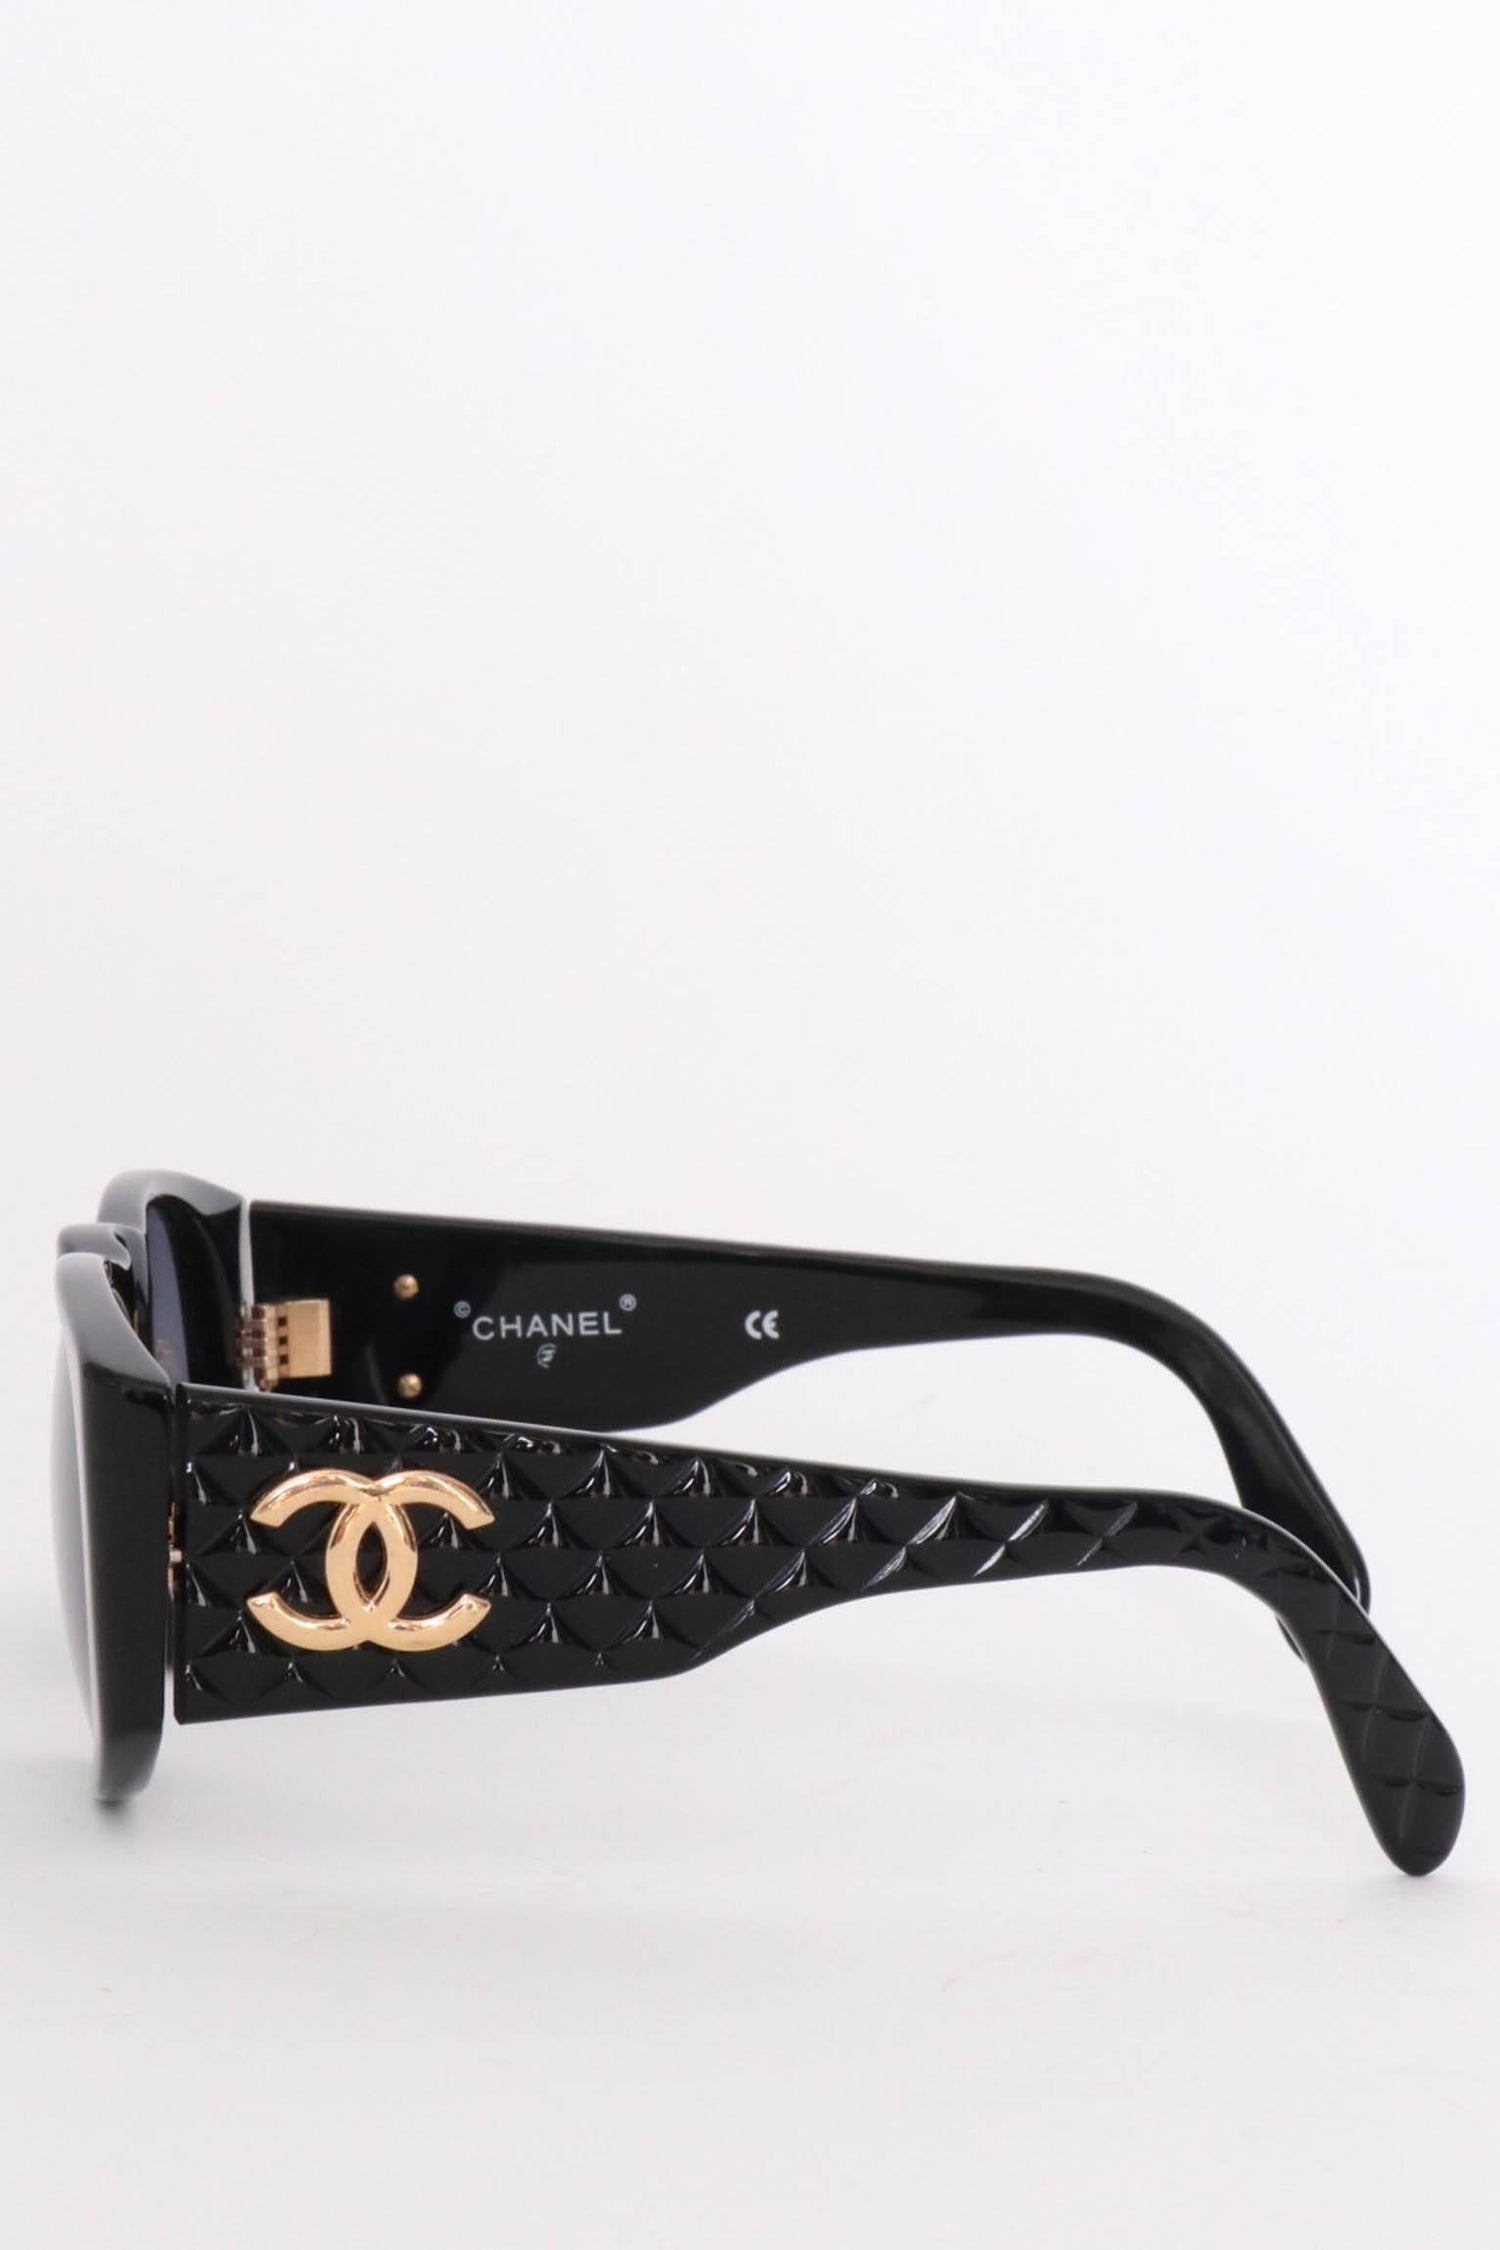 3905fa39ce321 Chanel Sunglasses with Quilted Sides and Gold Toned Logo